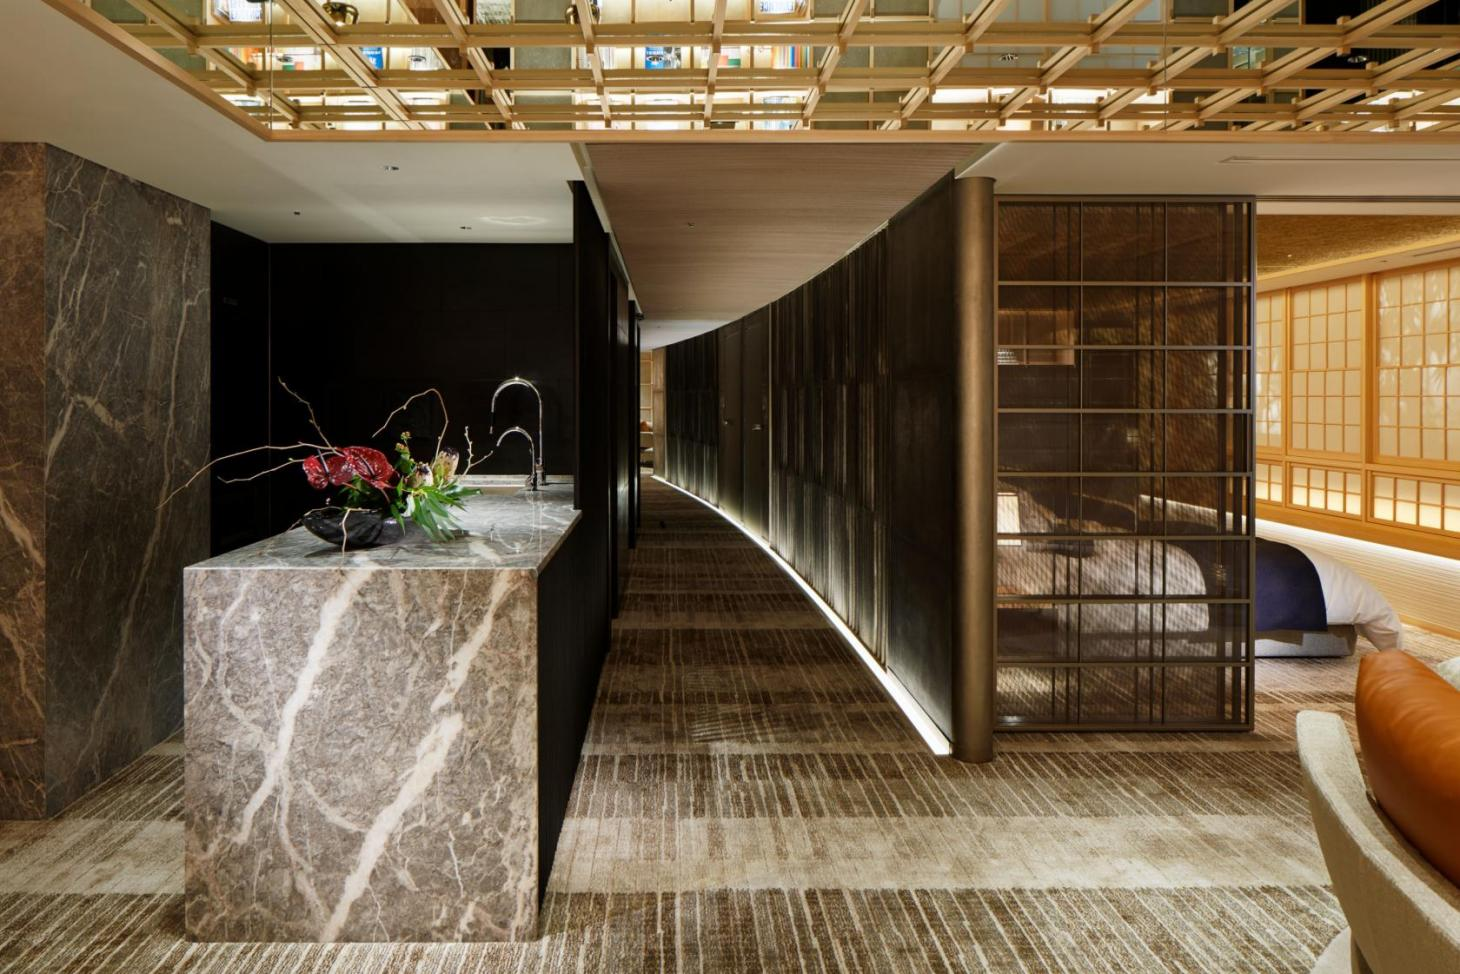 An Nagoya apartment features hand woven carpets